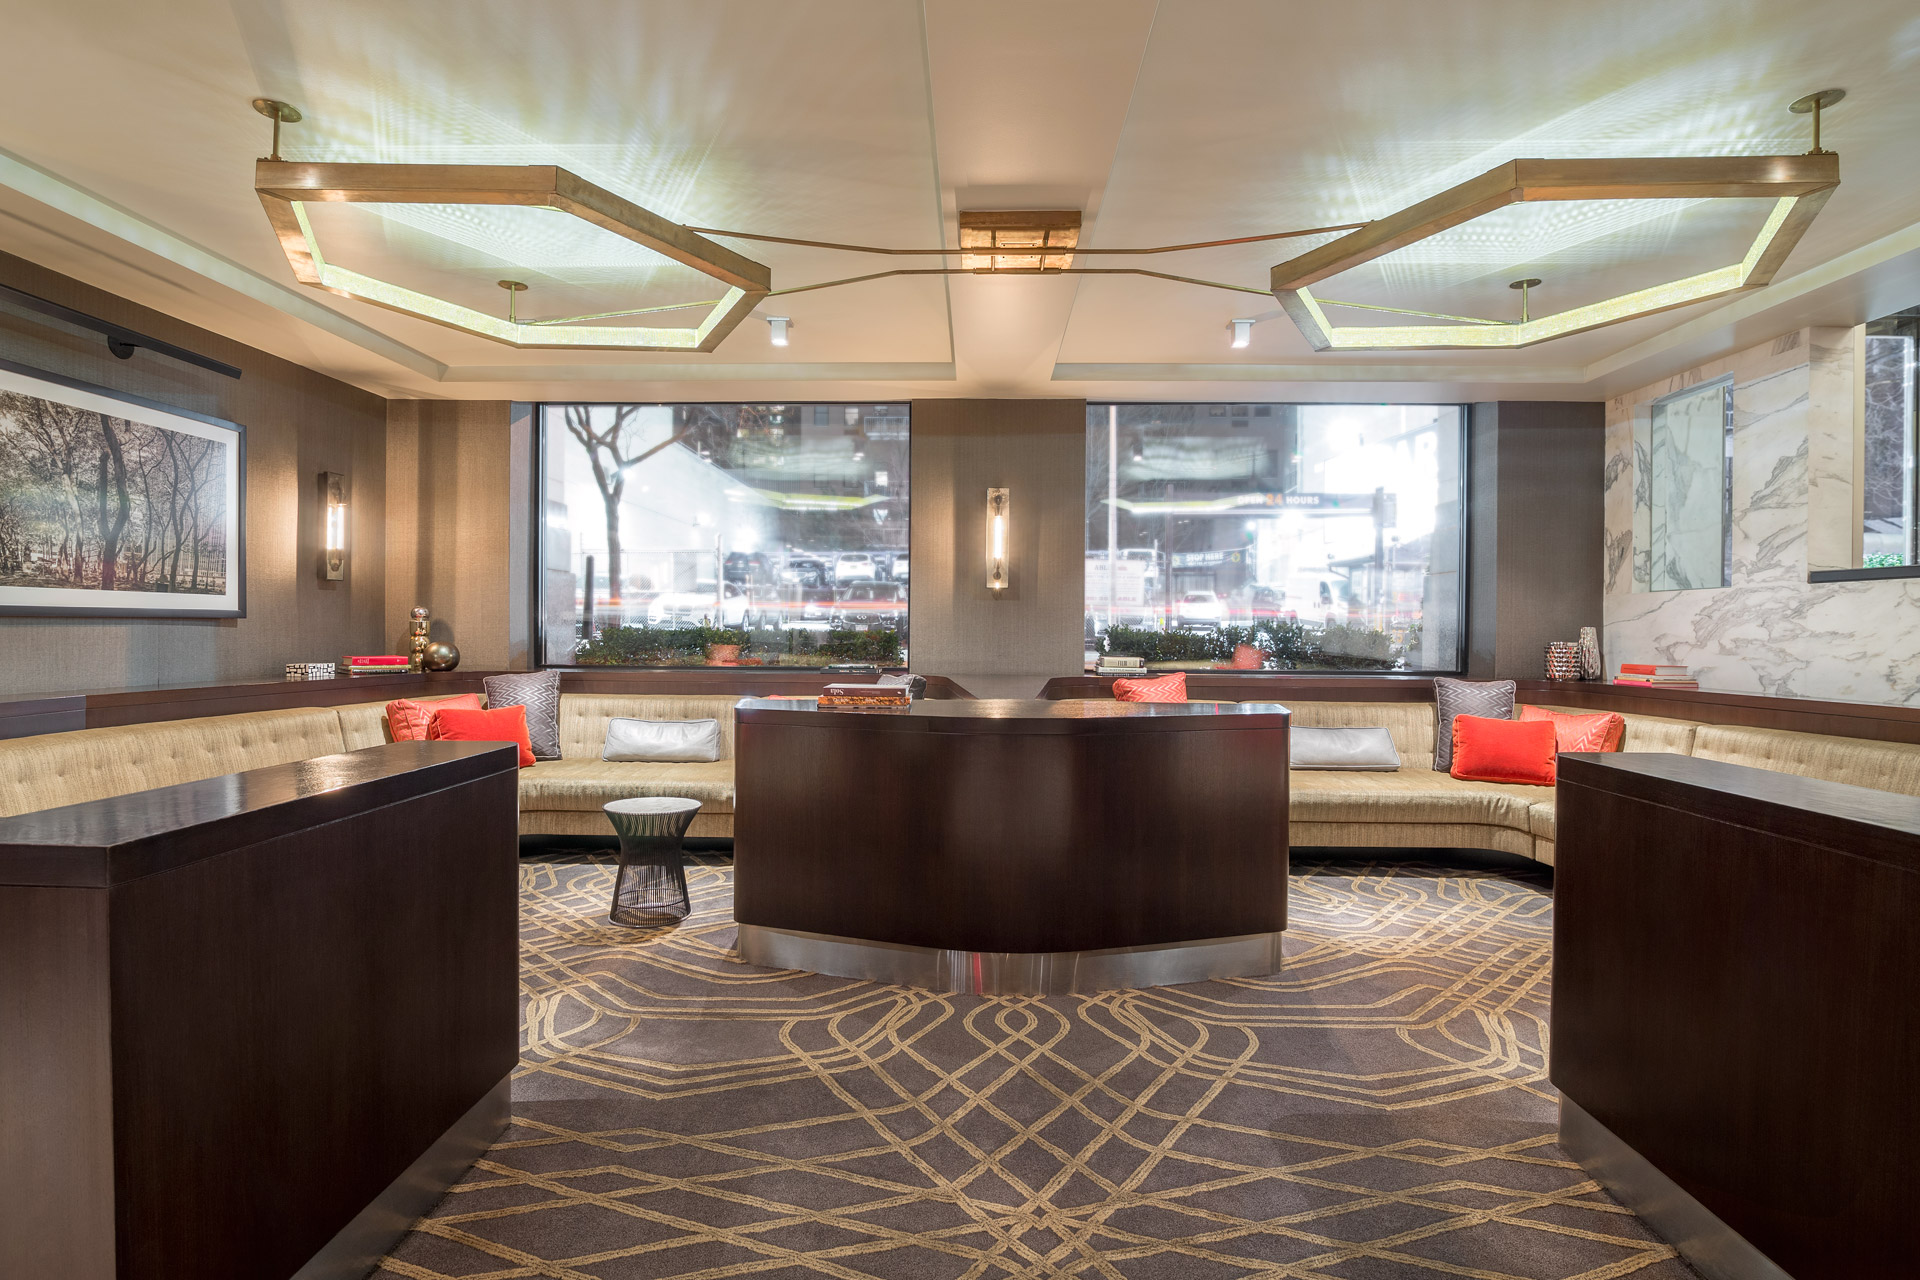 Park South Hotel interiors